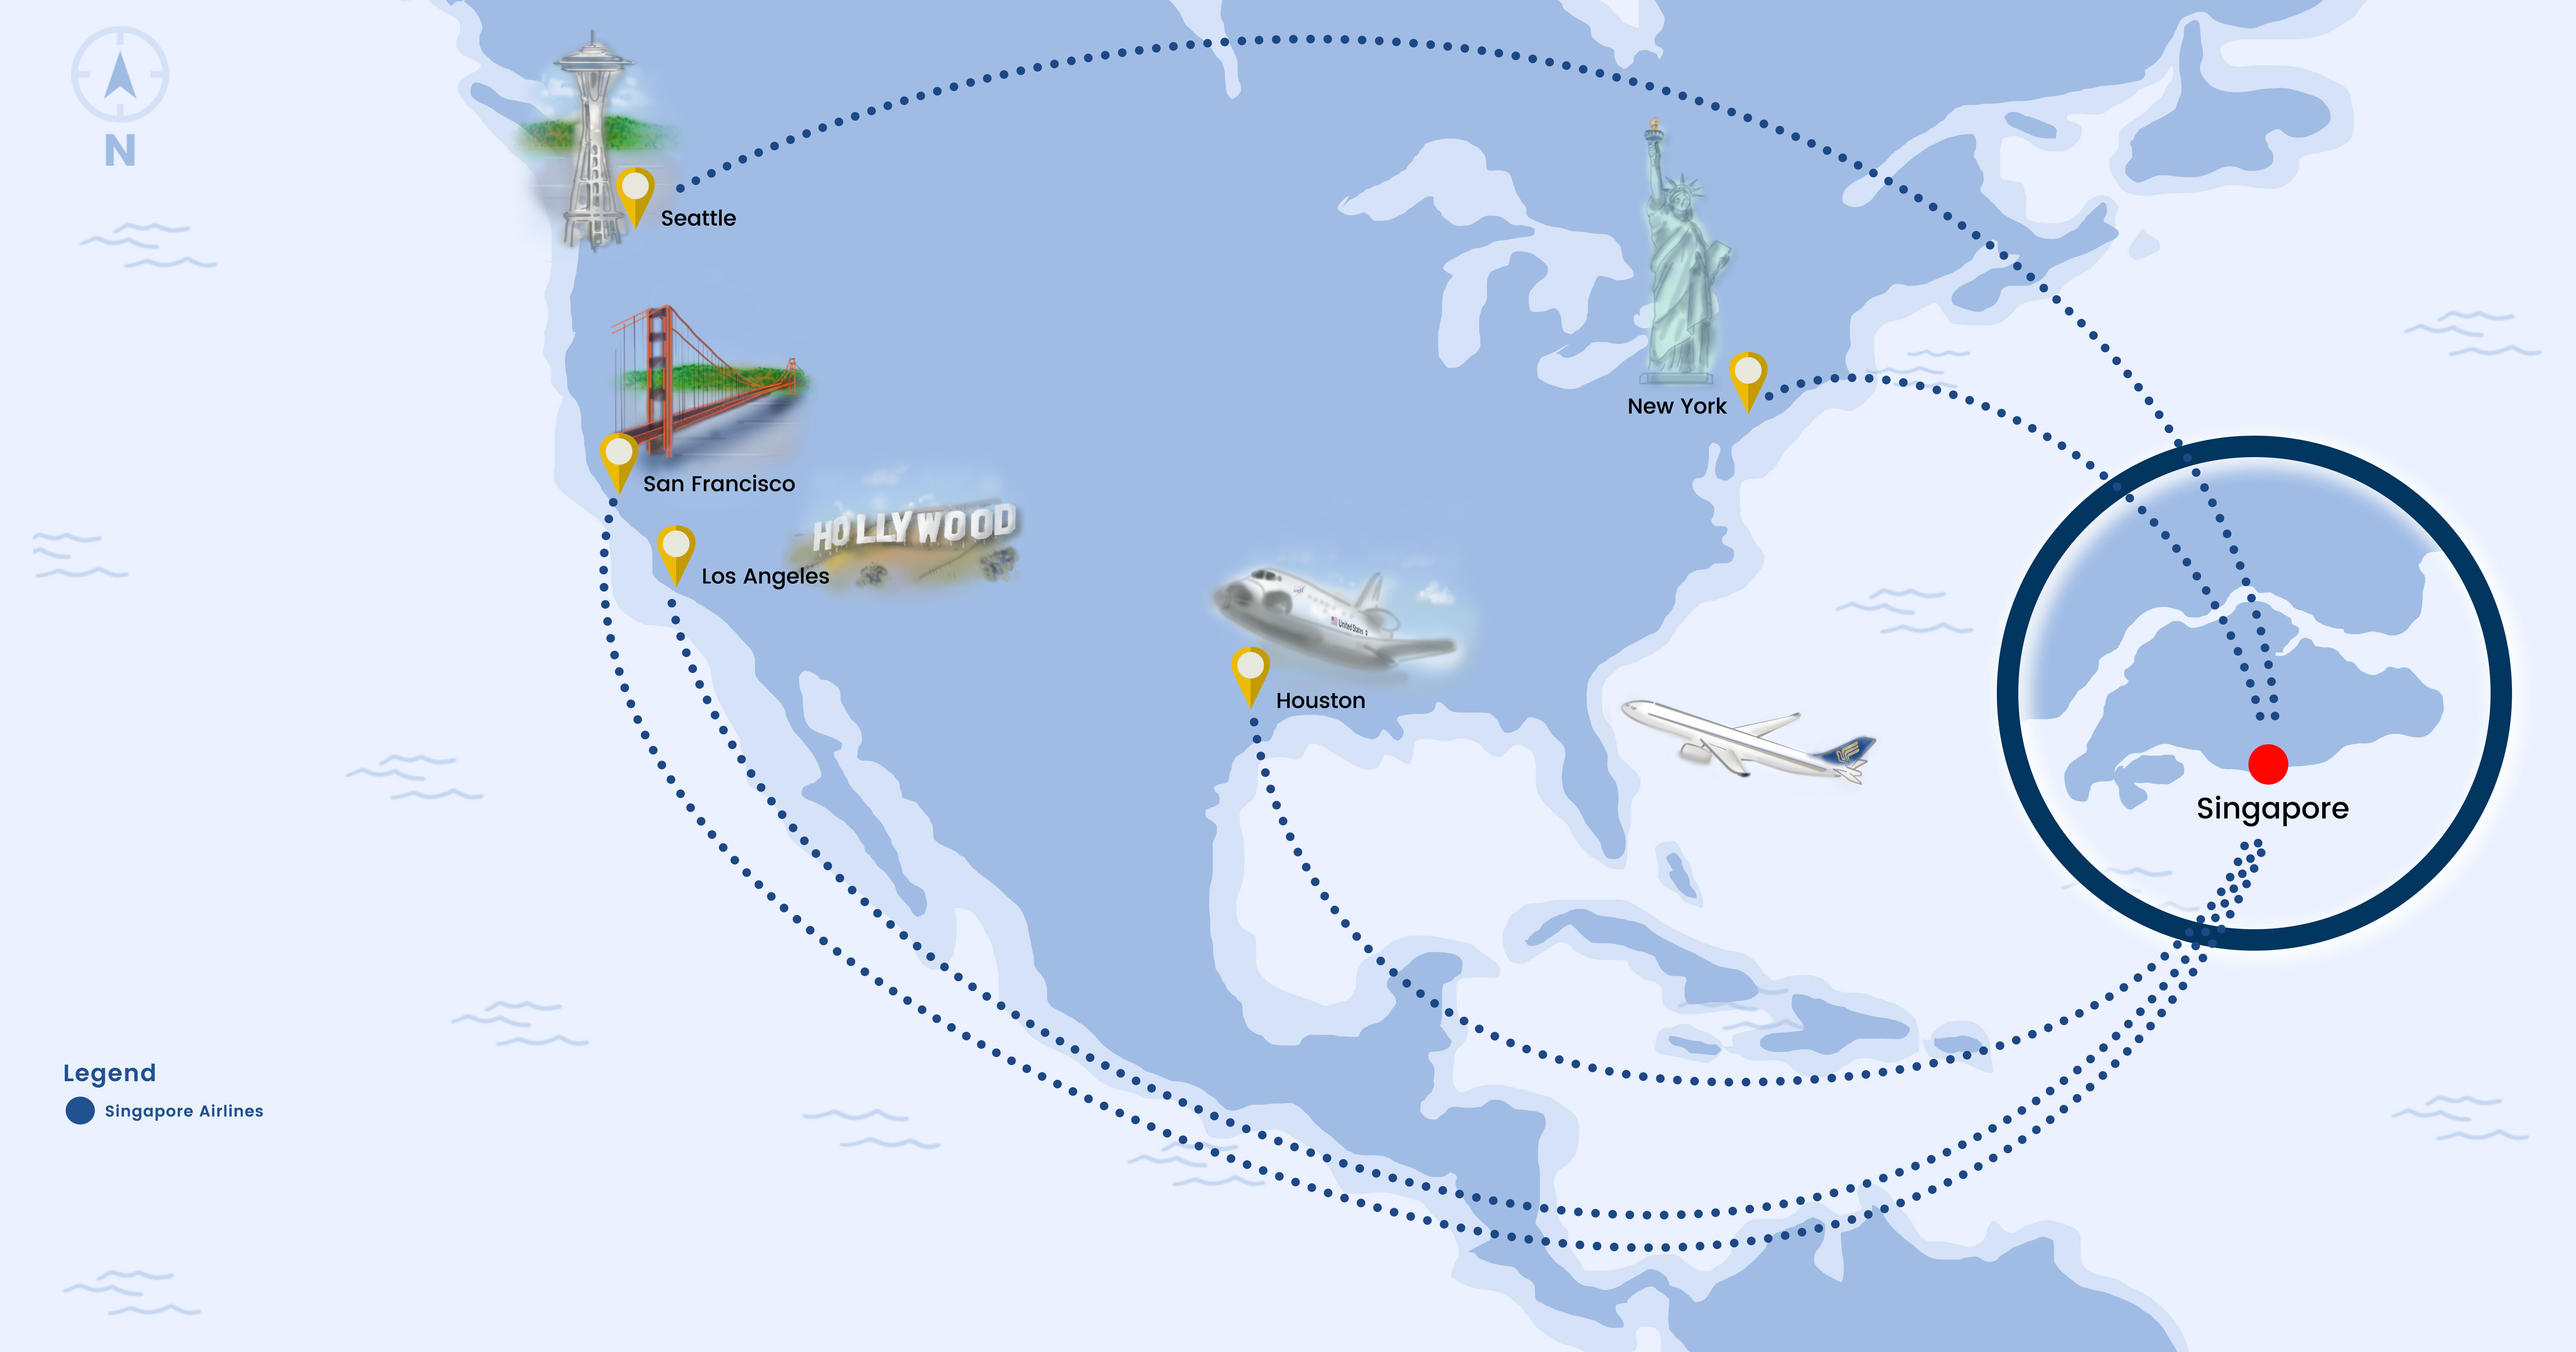 shenzhen airlines route map, air new zealand route map, air france route map, united route map, eva air route map, syrian airlines route map, el al airlines route map, aeroflot airline route map, air berlin route map, qantas route map, mokulele airlines route map, emirates airlines route map, tiger air route map, pakistan airlines route map, lan ecuador route map, alitalia airlines route map, shanghai airlines route map, world airline route map, jetstar route map, thai airways route map, on singapore airlines route map